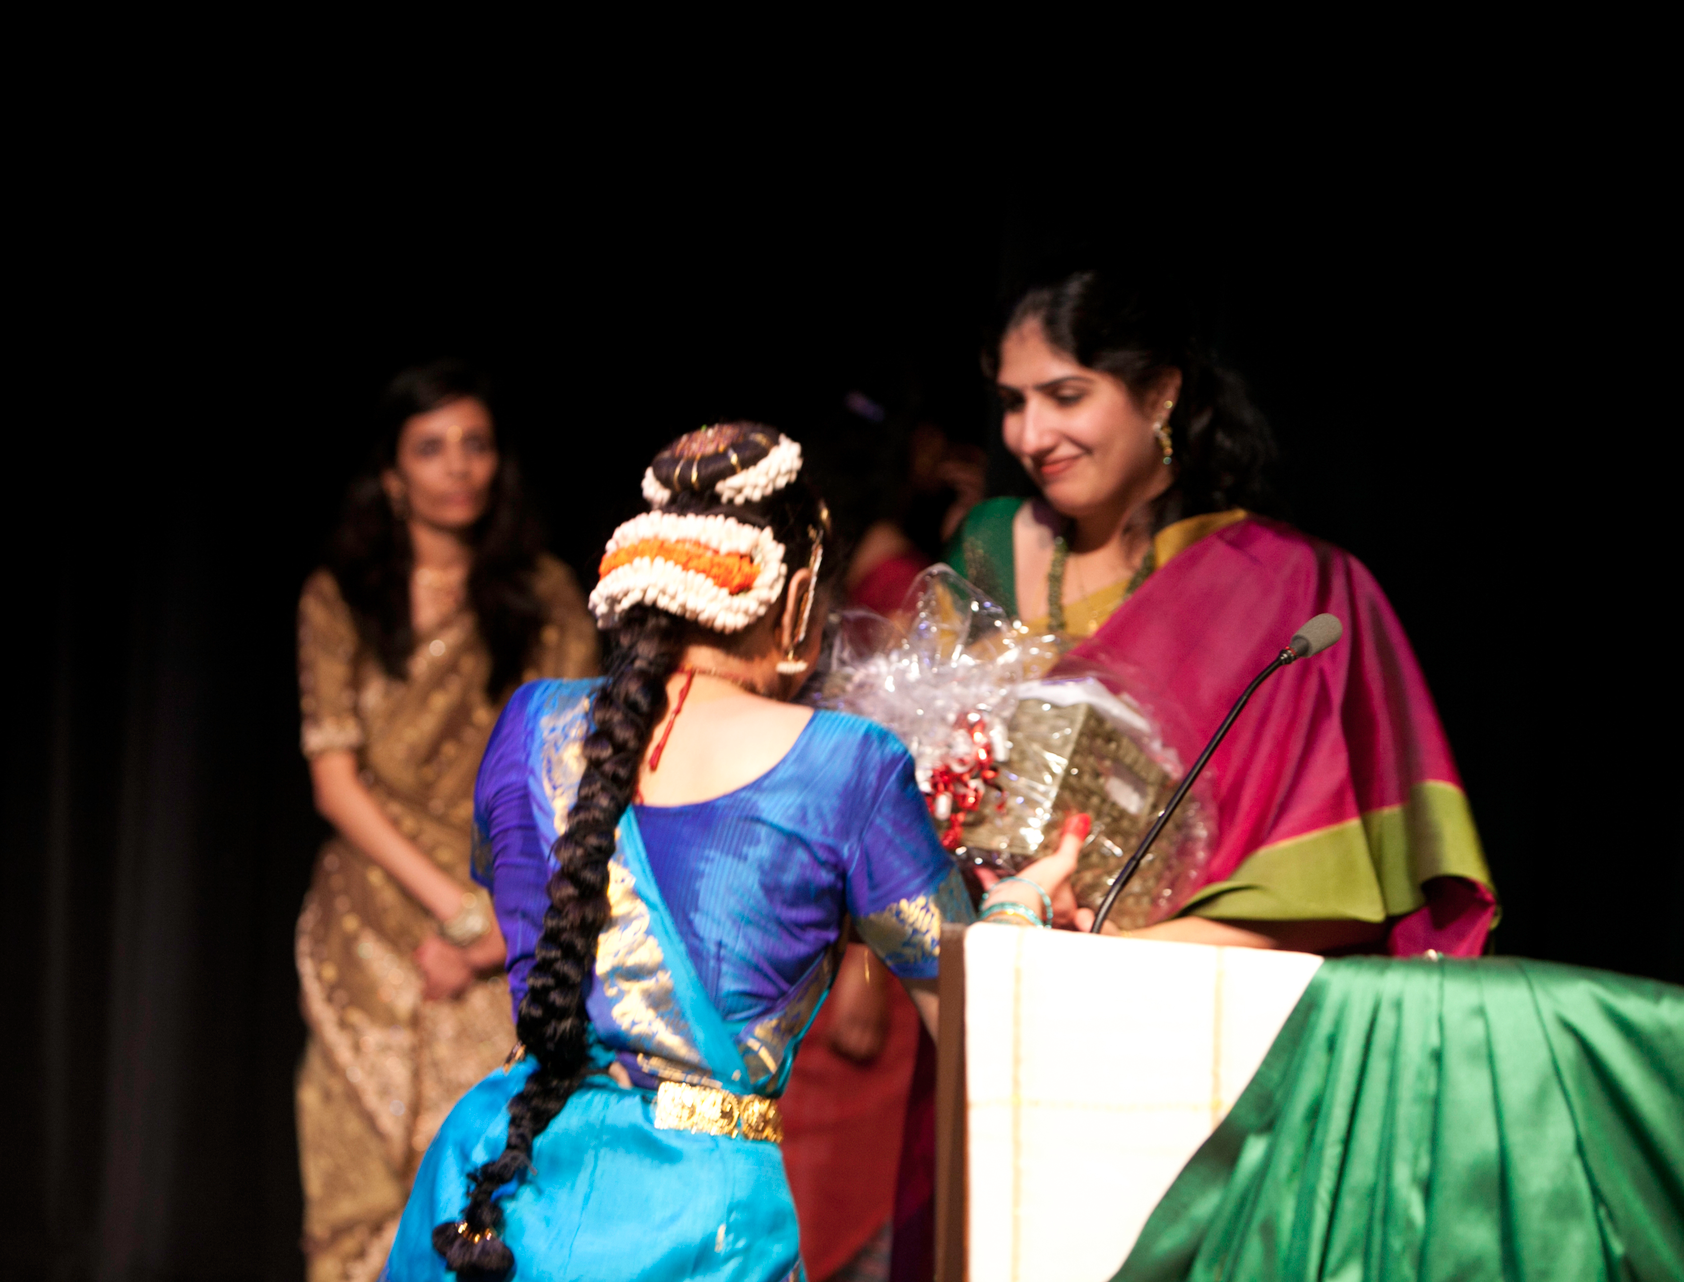 Siddhi Patel, Silambam's first Ranga Pravesham student, presents her Guru with a token of appreciation at her debut performance in 2011. You can also find Siddhi (now Siddhi Aryan) on our ' Supporters ' page, listed under 'Gold Donors', in recognition of her extraordinary contirbution of architectural design services to Silambam.